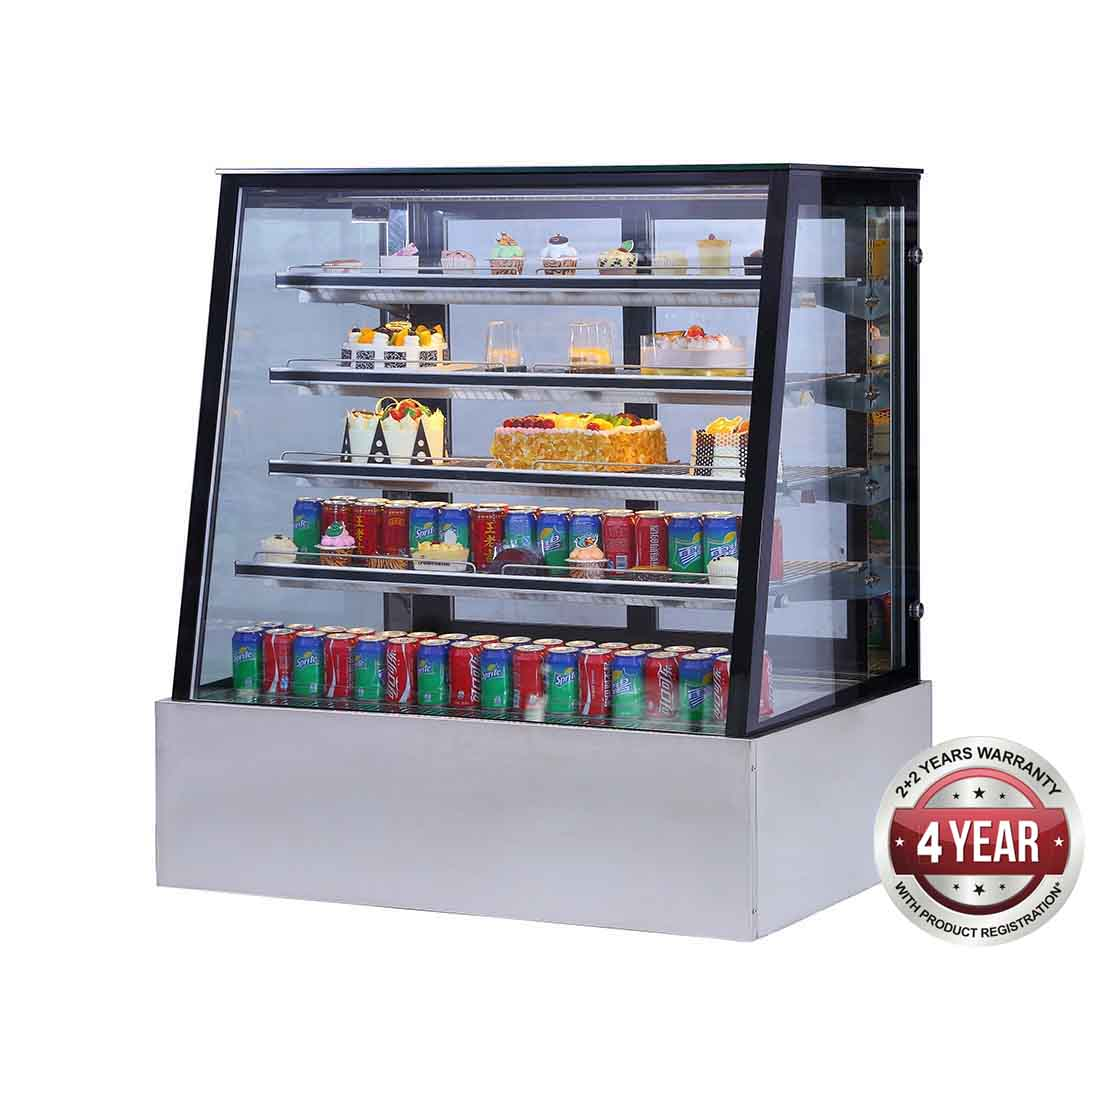 SLP870C Bonvue Deluxe Chilled Display Cabinet 2000x800x1350